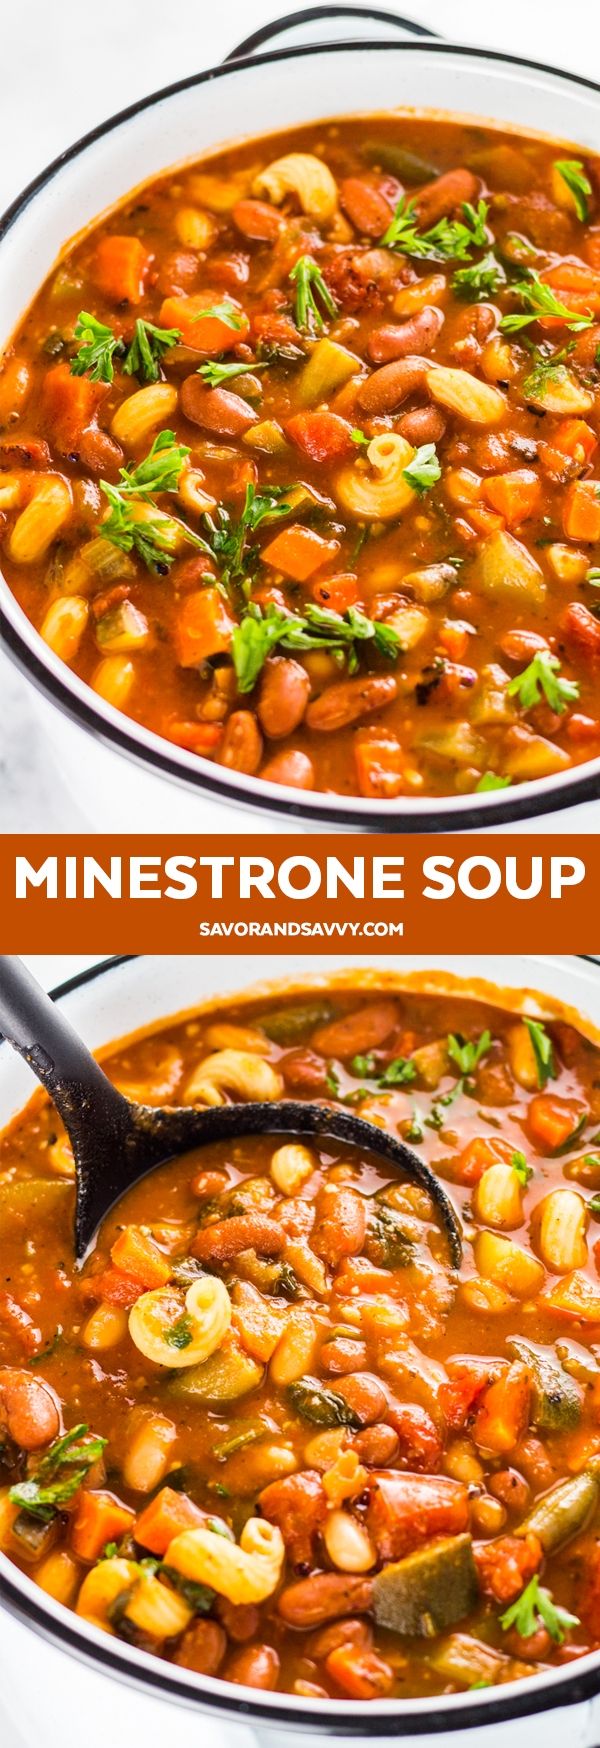 Make this easy vegan minestrone soup recipe that's the perfect fall or winter soup! Add this easy soup recipe to your winter dinner meal plan. It'll become one of your go-to easy dinner recipes this season.